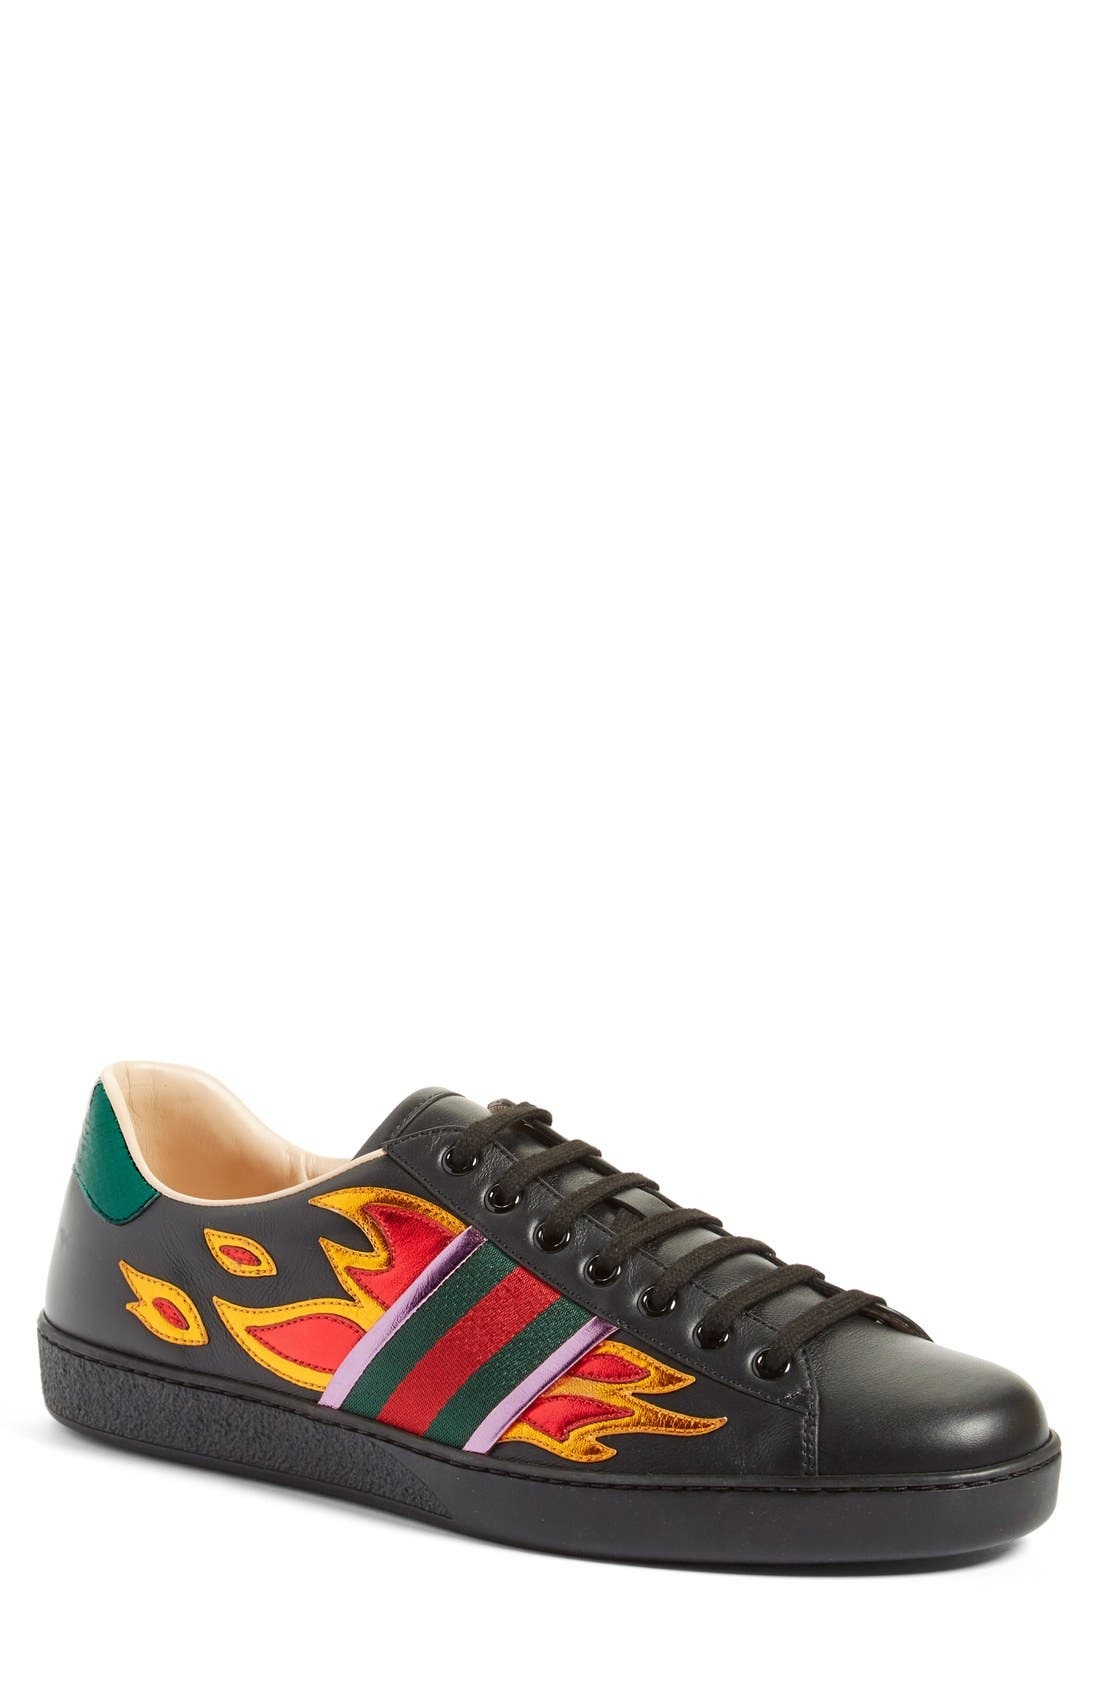 Gucci 'New Ace Flames' Sneaker with